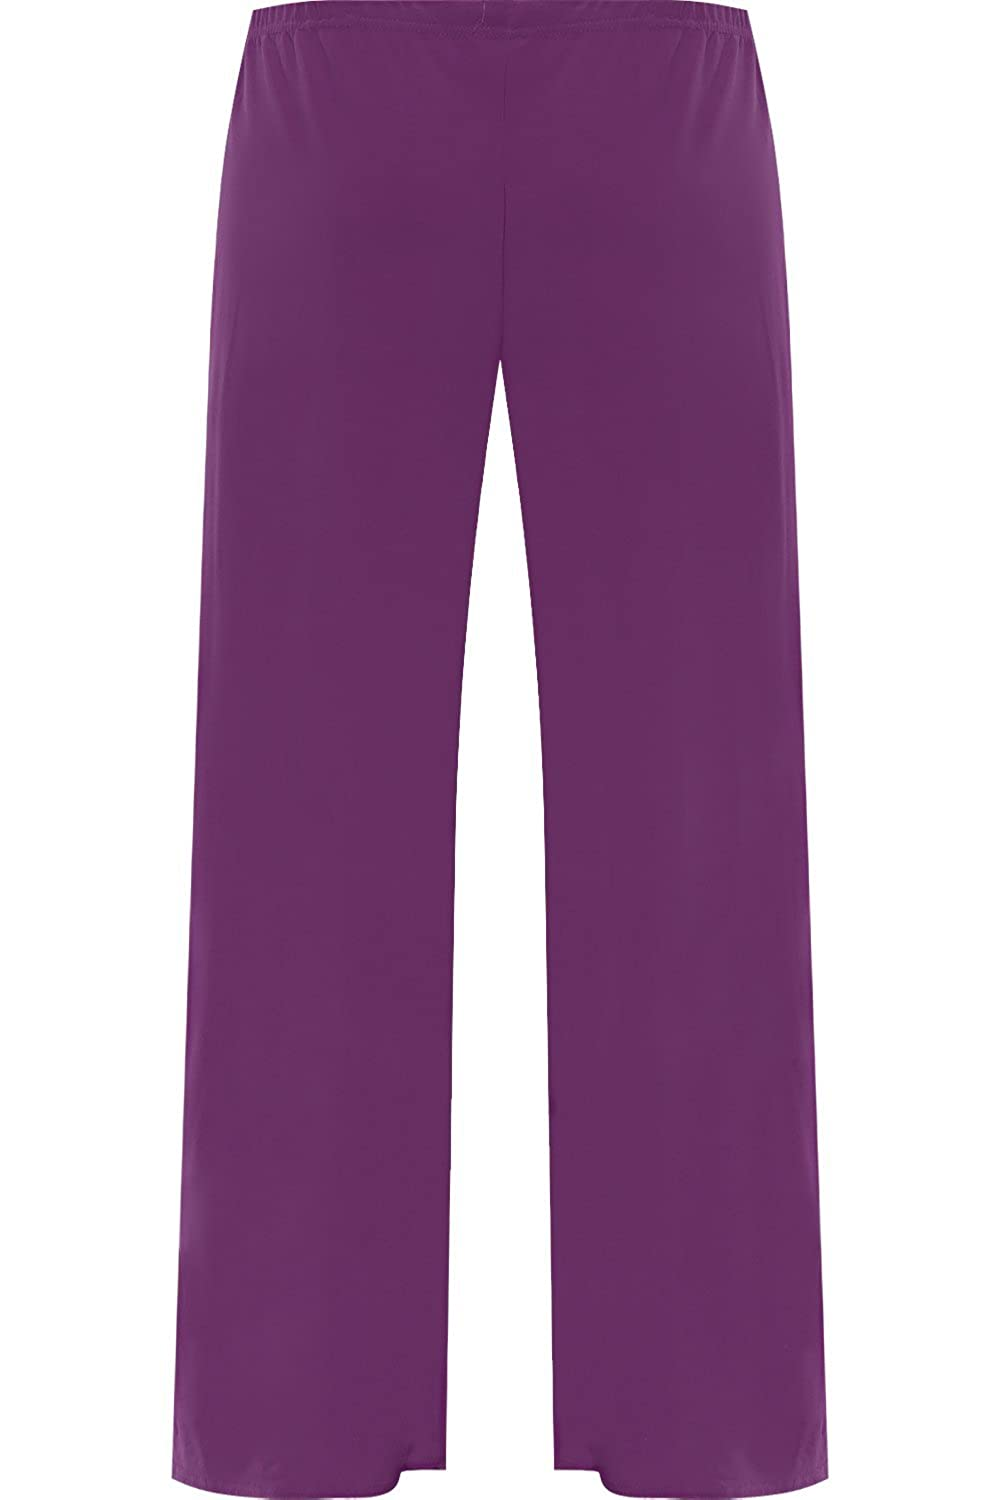 0a87441c638 WearAll Womens Plus Size Palazzo Trousers Baggy Flared Wide Leg Pants   Amazon.ca  Clothing   Accessories